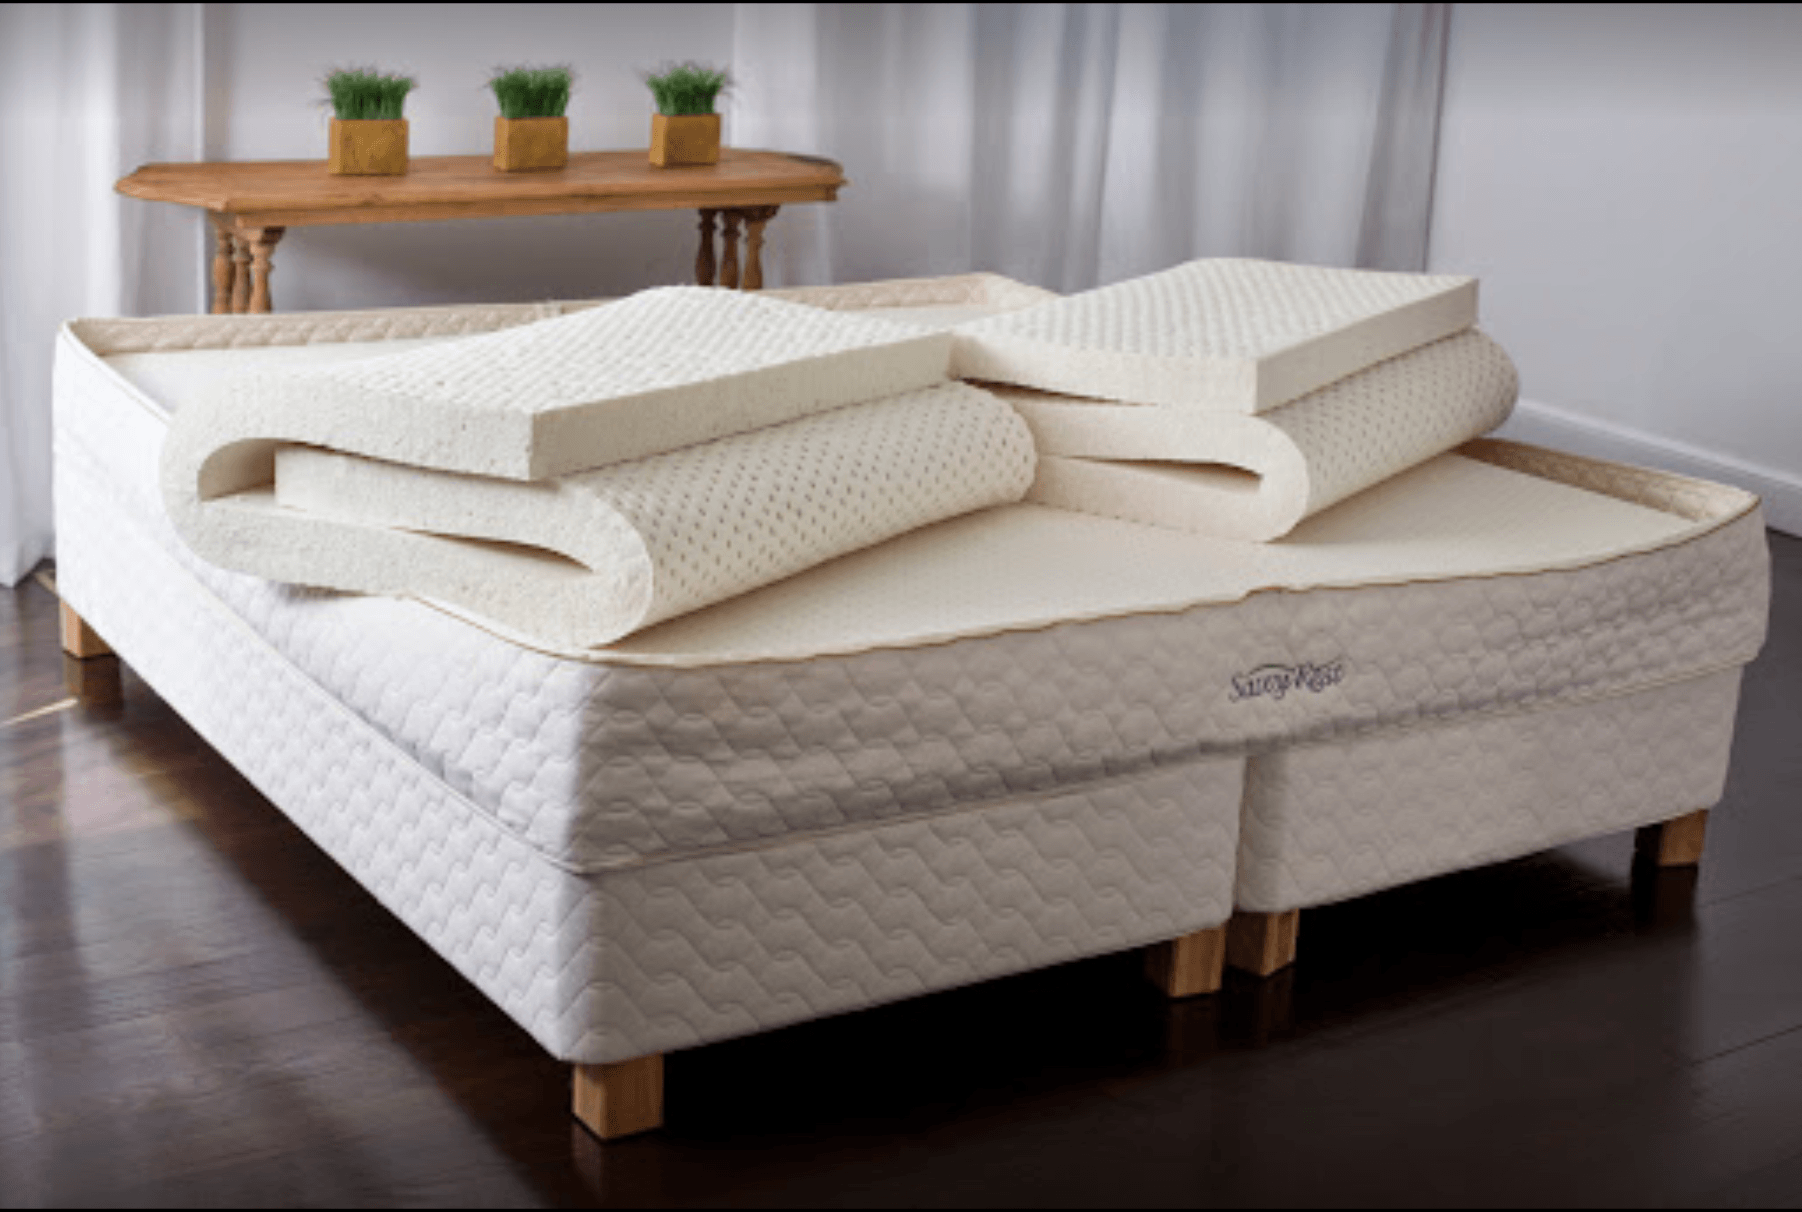 Unity Mattress SavvyRest Natural Mattress Xperts Florida